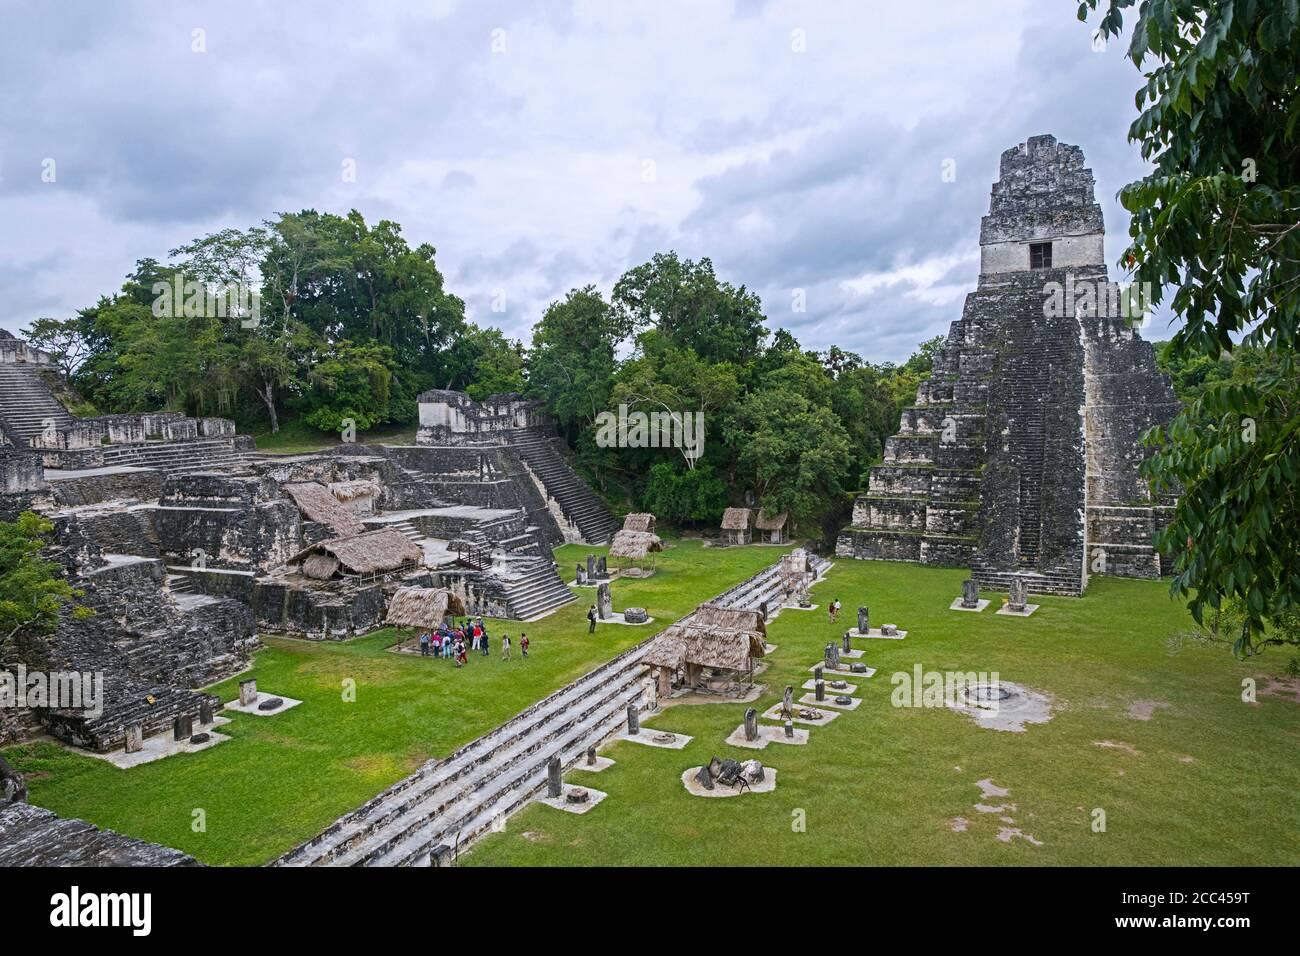 Old ruins of Tikal / Yax Mutal, ancient Maya city near the town Flores, Petén Department, Guatemala, Central America Stock Photo